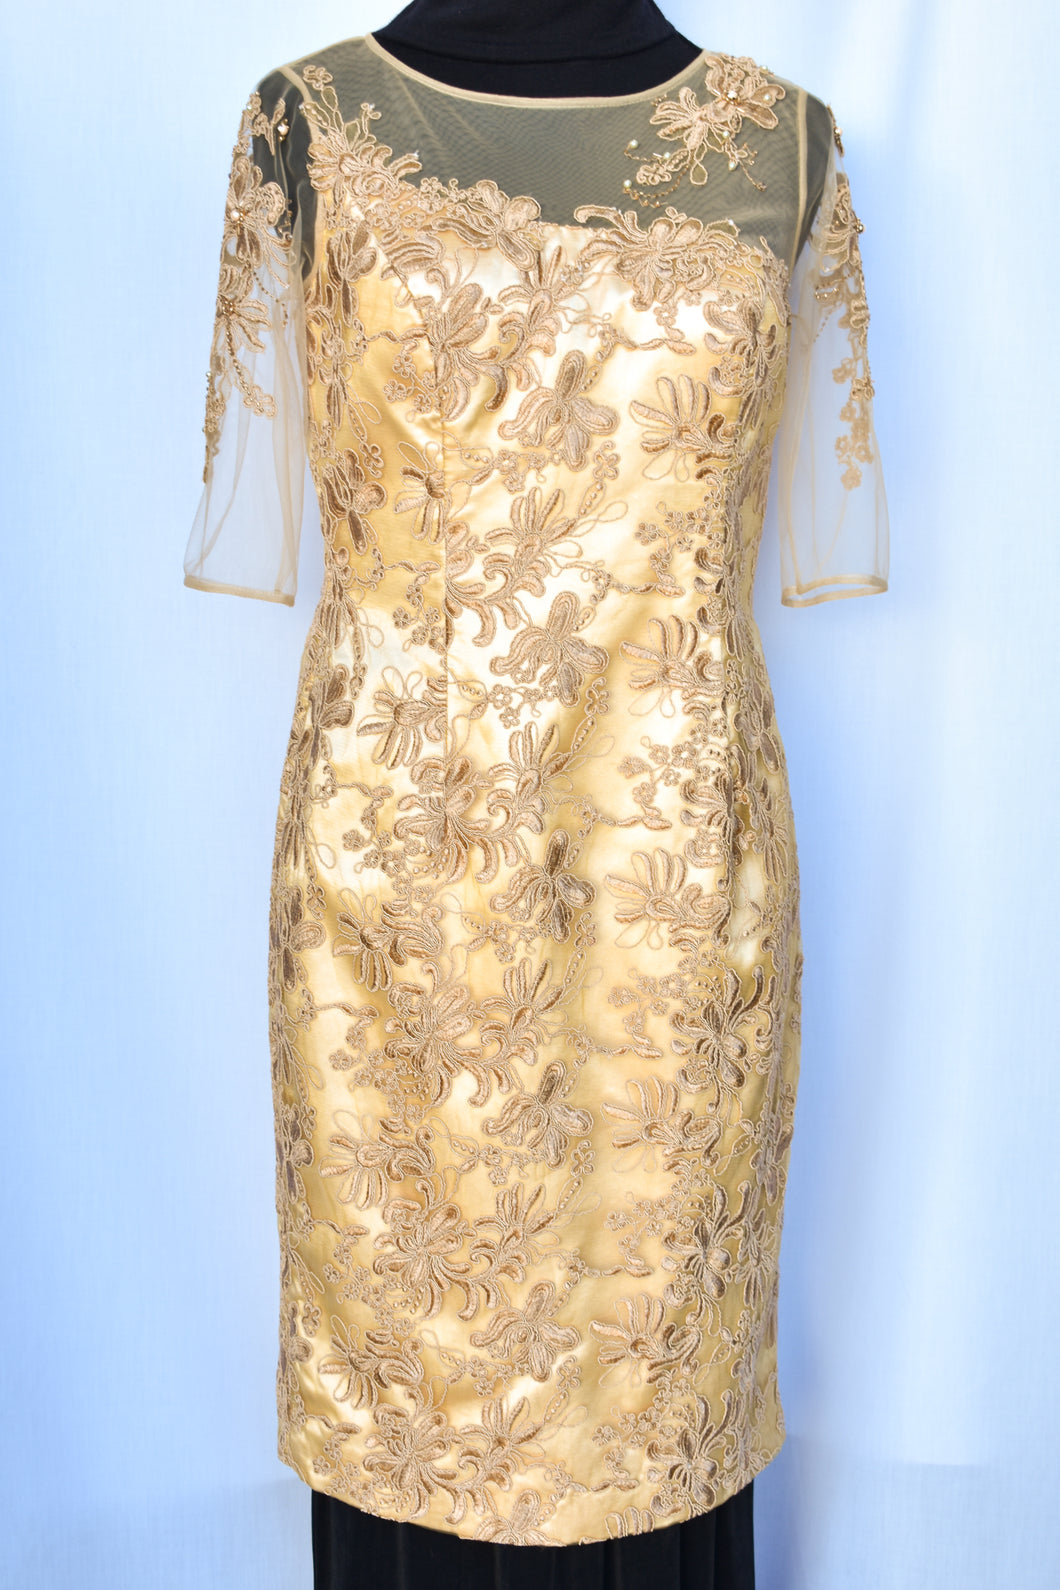 Zeila 'Mother of the Bride' dress, size 40